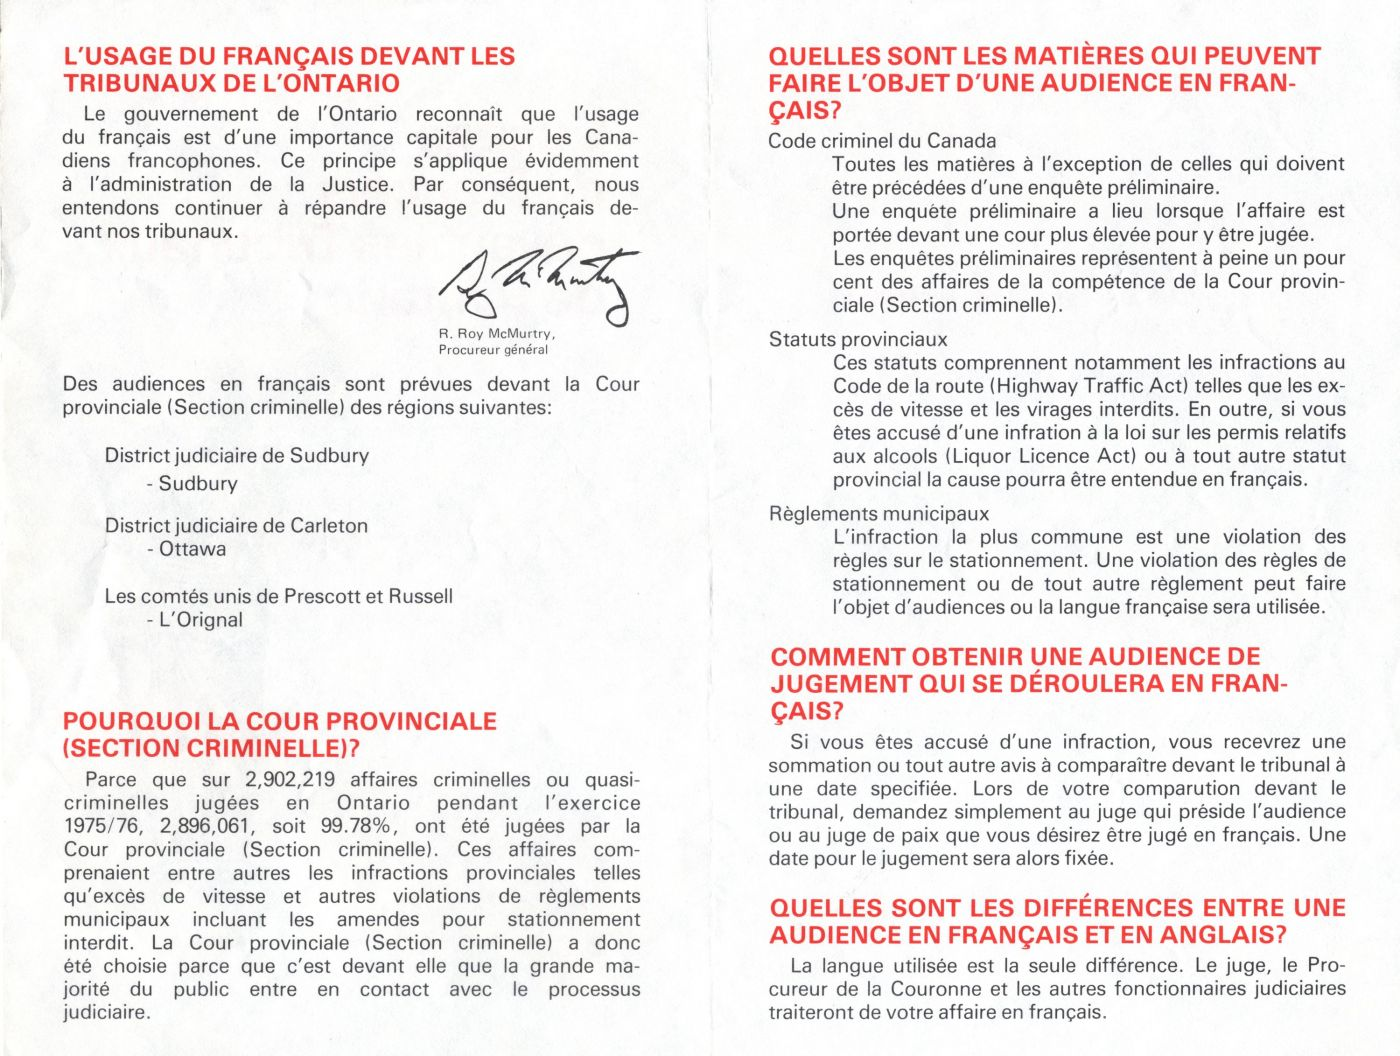 French pamphlet, divided into four parts. On the cover, the title of the document, its source, and a drawing of Justice. On the front, information elements grouped under five headings; on the back, instructions for more information. Alternating between red and black.